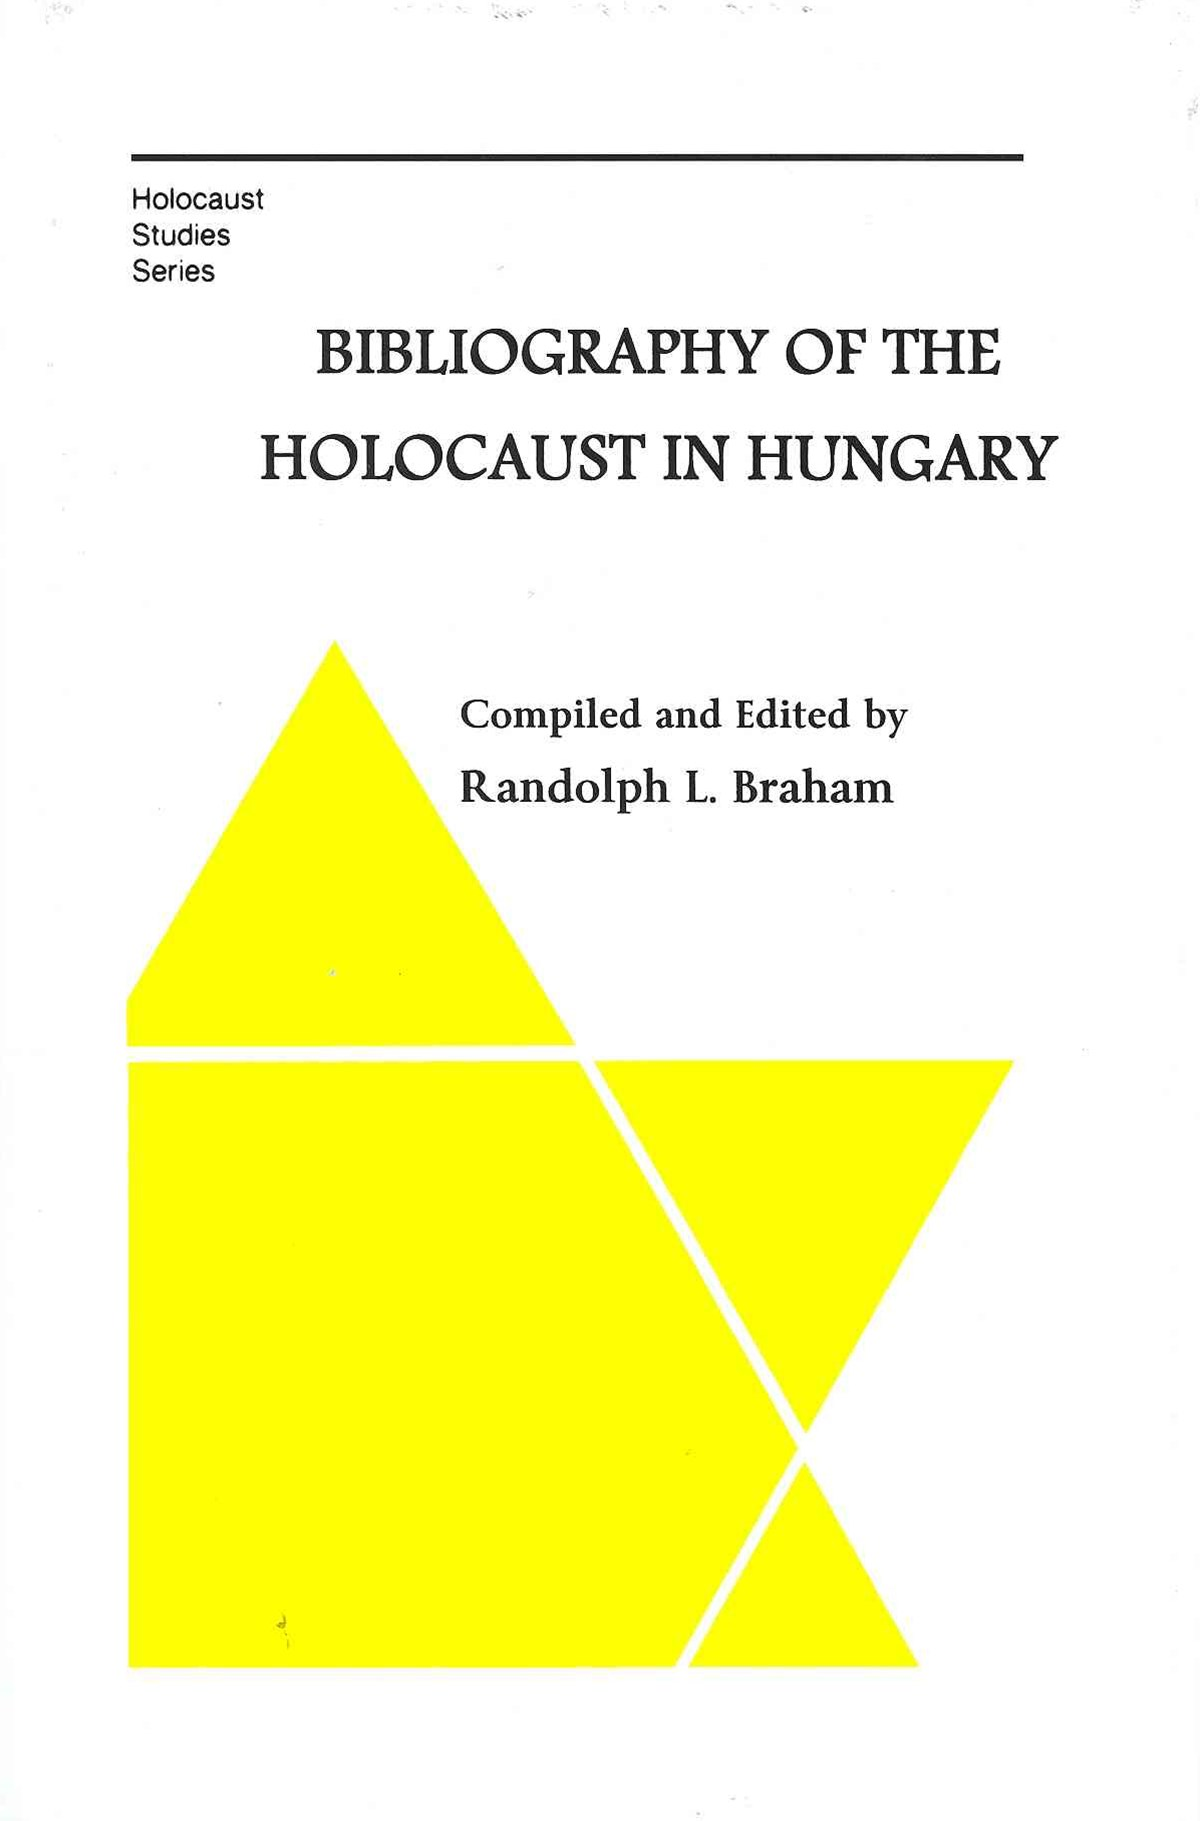 Bibliography of the Holocaust in Hungary